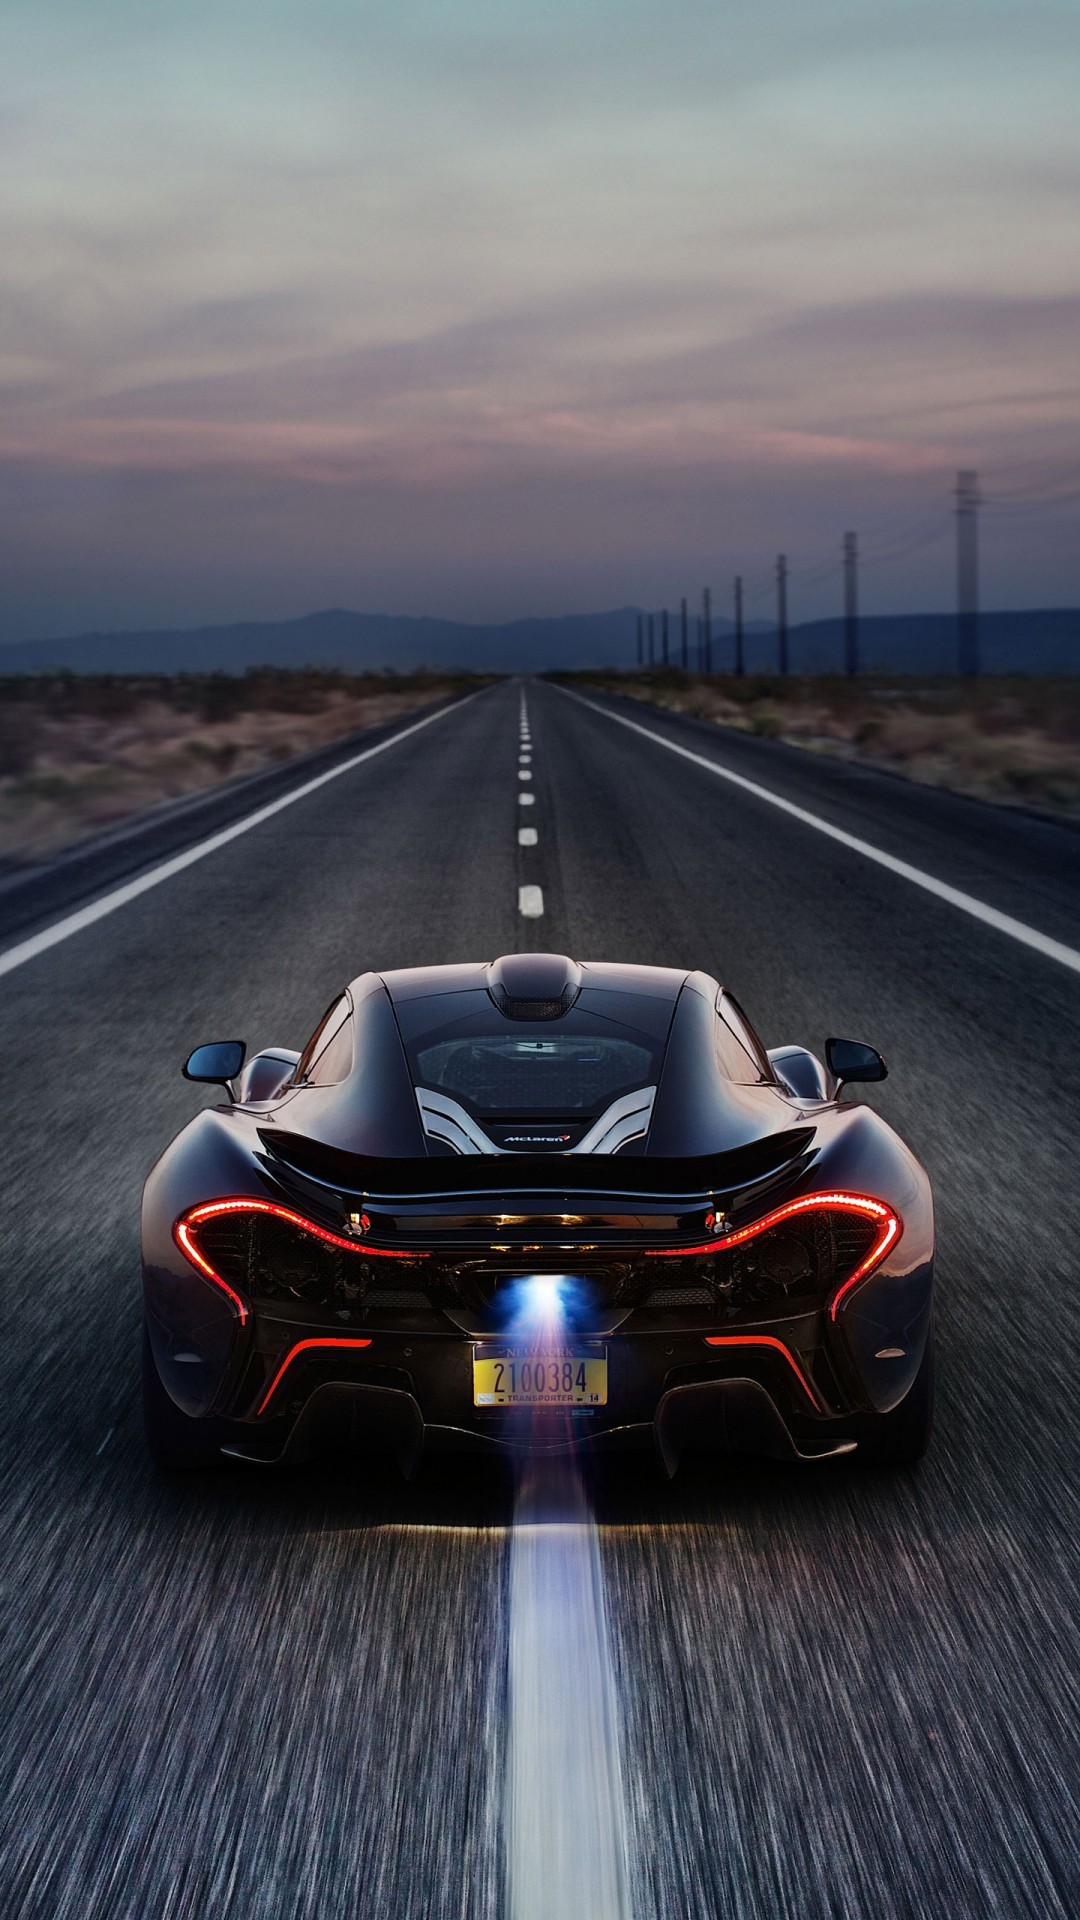 Free McLaren P1 Death Valley Race track phone wallpaper by engineer2211